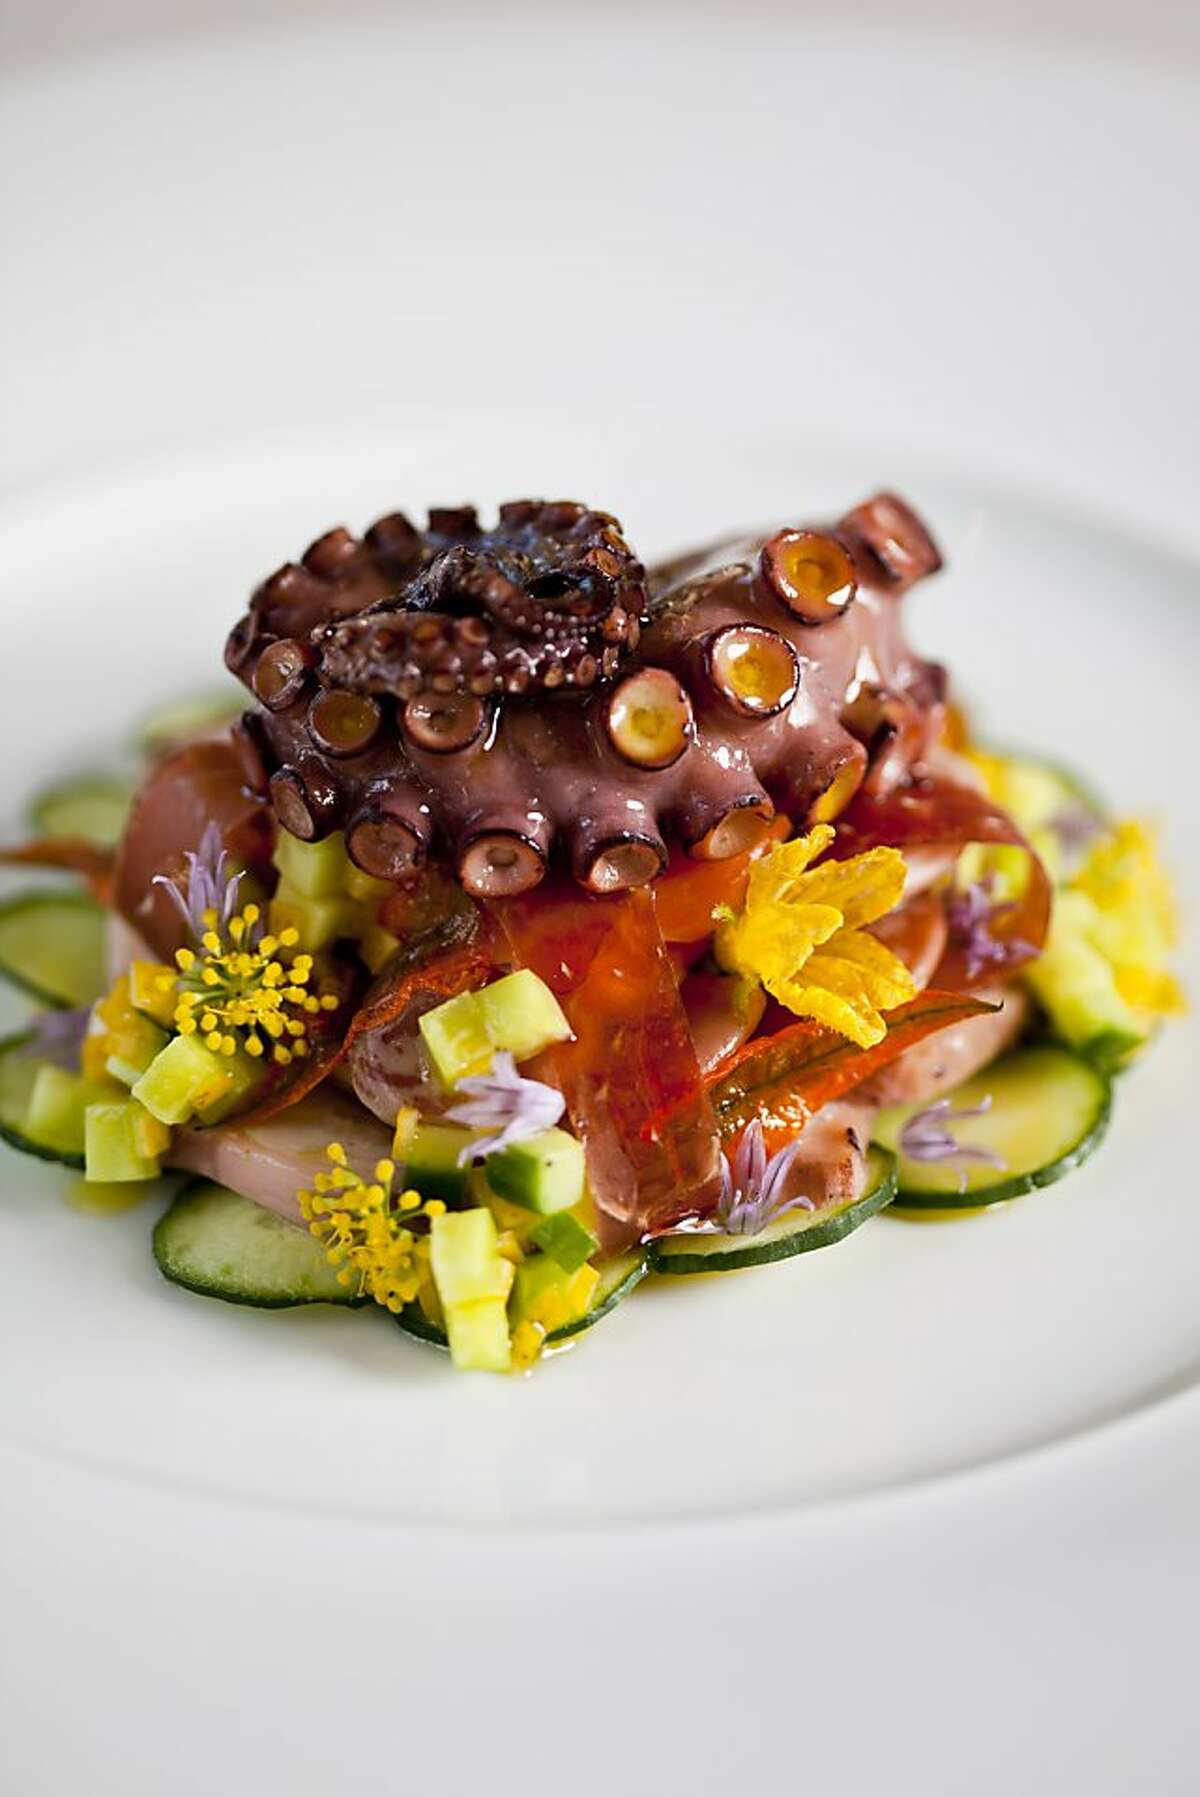 Octopus salad with christmas lima bean, cucumber, mangalitsa jamon, local king salmon belly and preserved lemon relish at Marinus restaurant at Bernardus Lodge in Carmel, Calif., Friday, September 7, 2012.